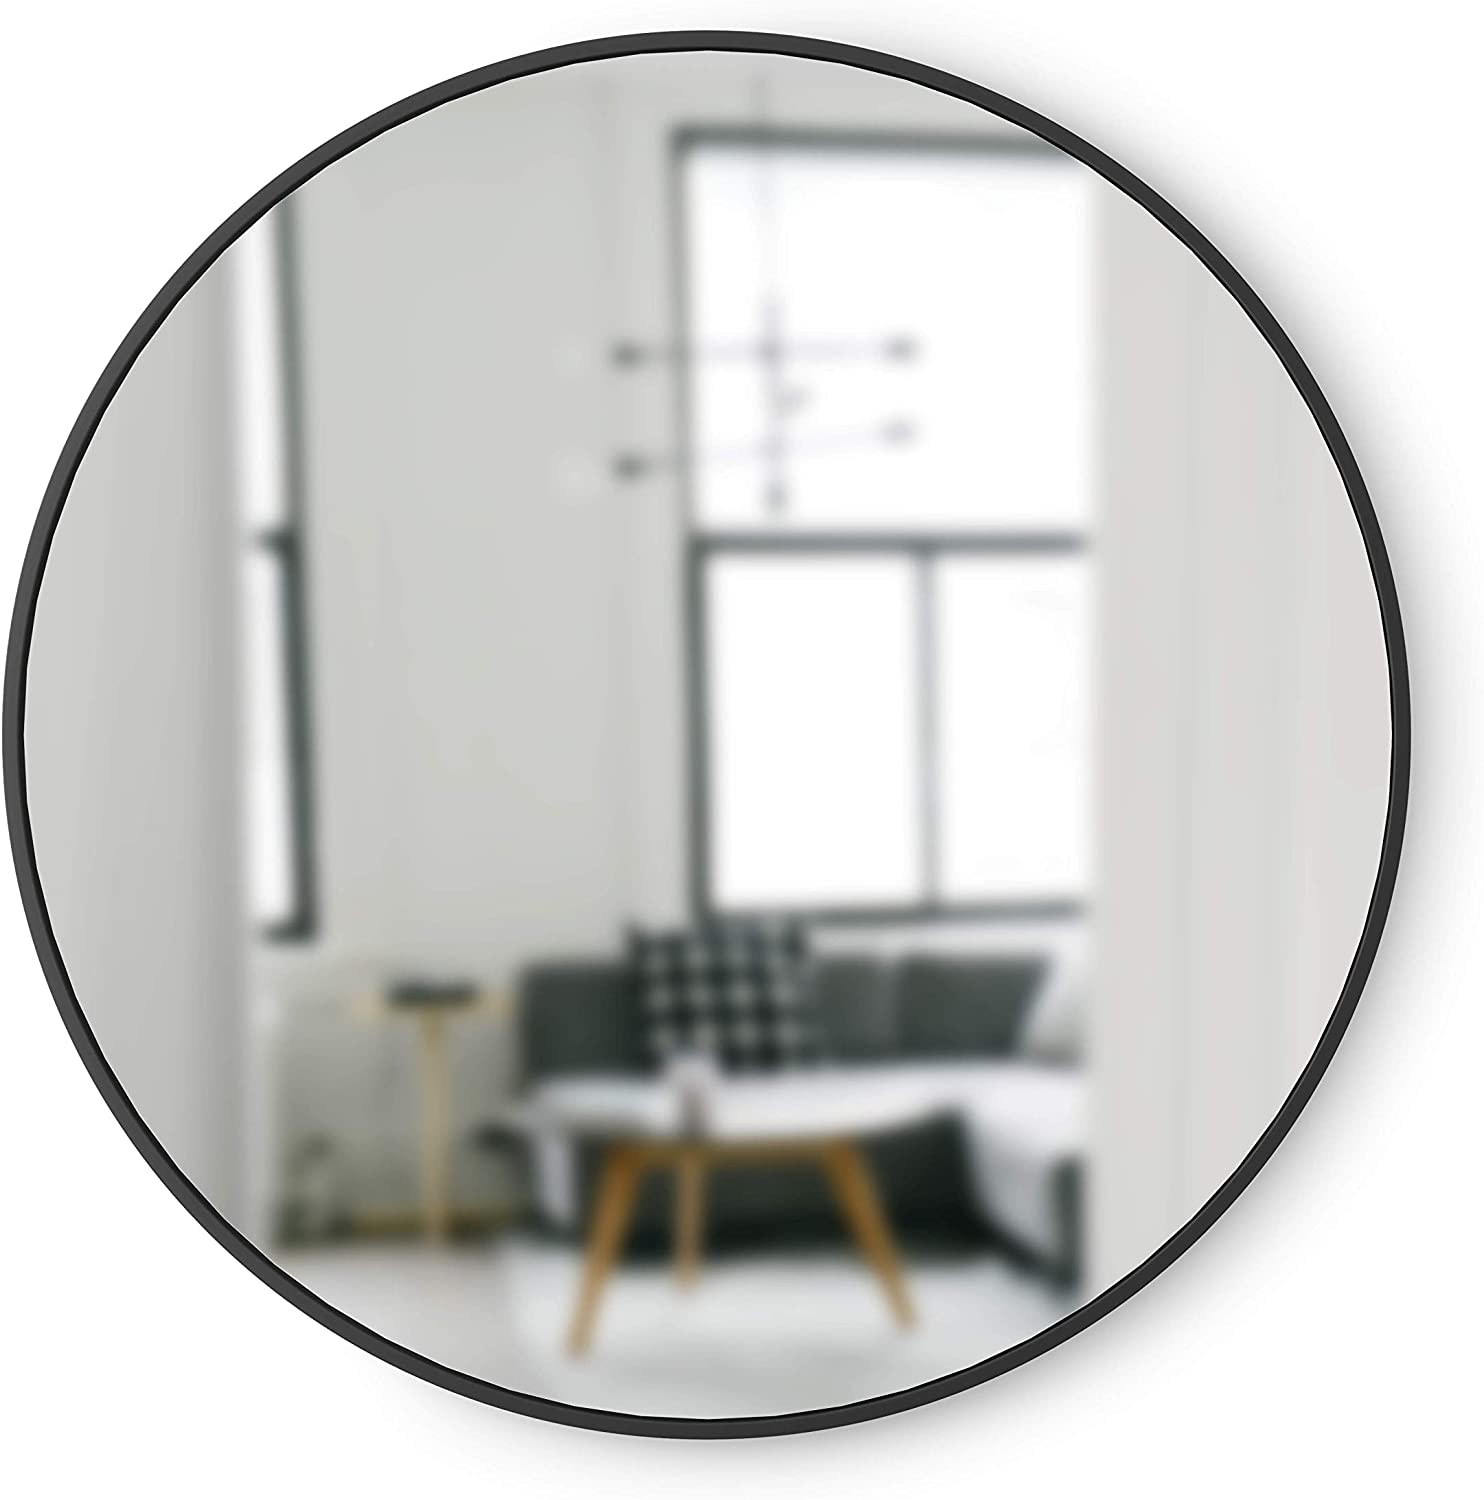 Umbra Hub Rubber Frame, Wall Mirror for Entryways, Bathrooms, Living Rooms and More, 37-Inch, Black